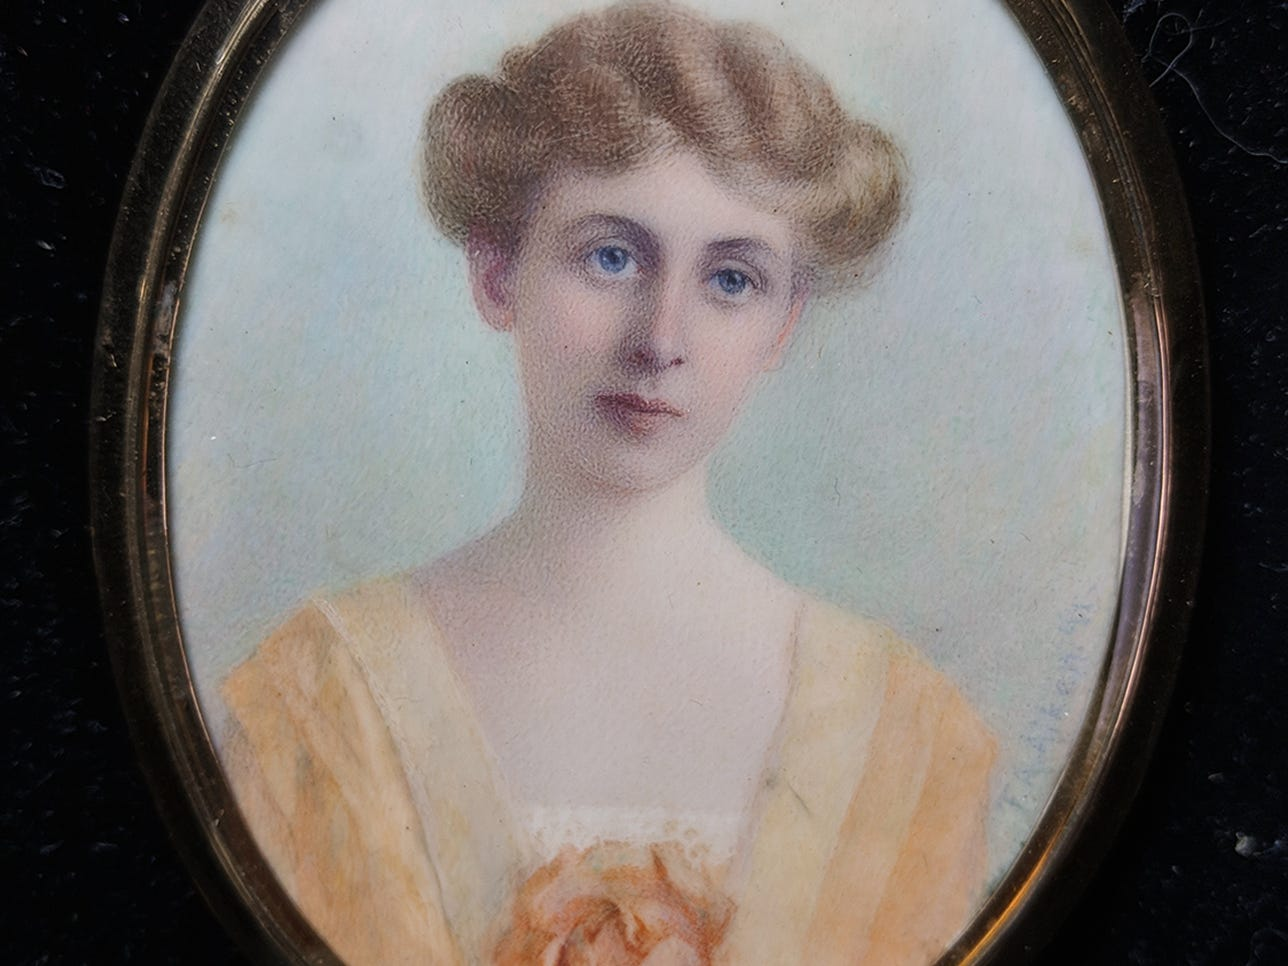 A portrait of Emily Hockaday Blair in 14K gold frame is to be auctioned. Her name is engraved on the back.